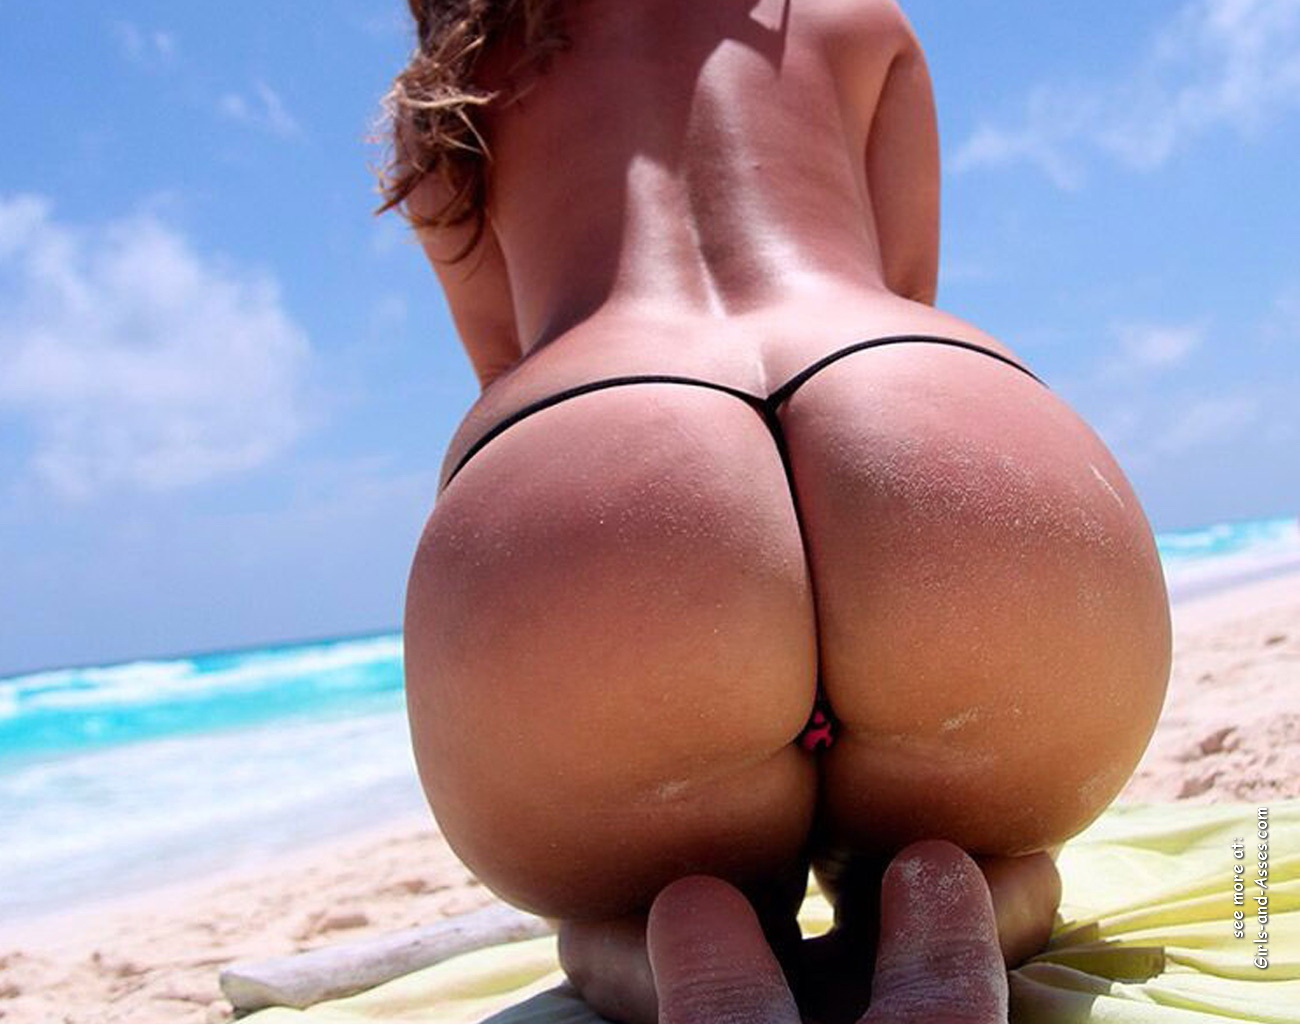 big booty naked women at the beach photo 00137